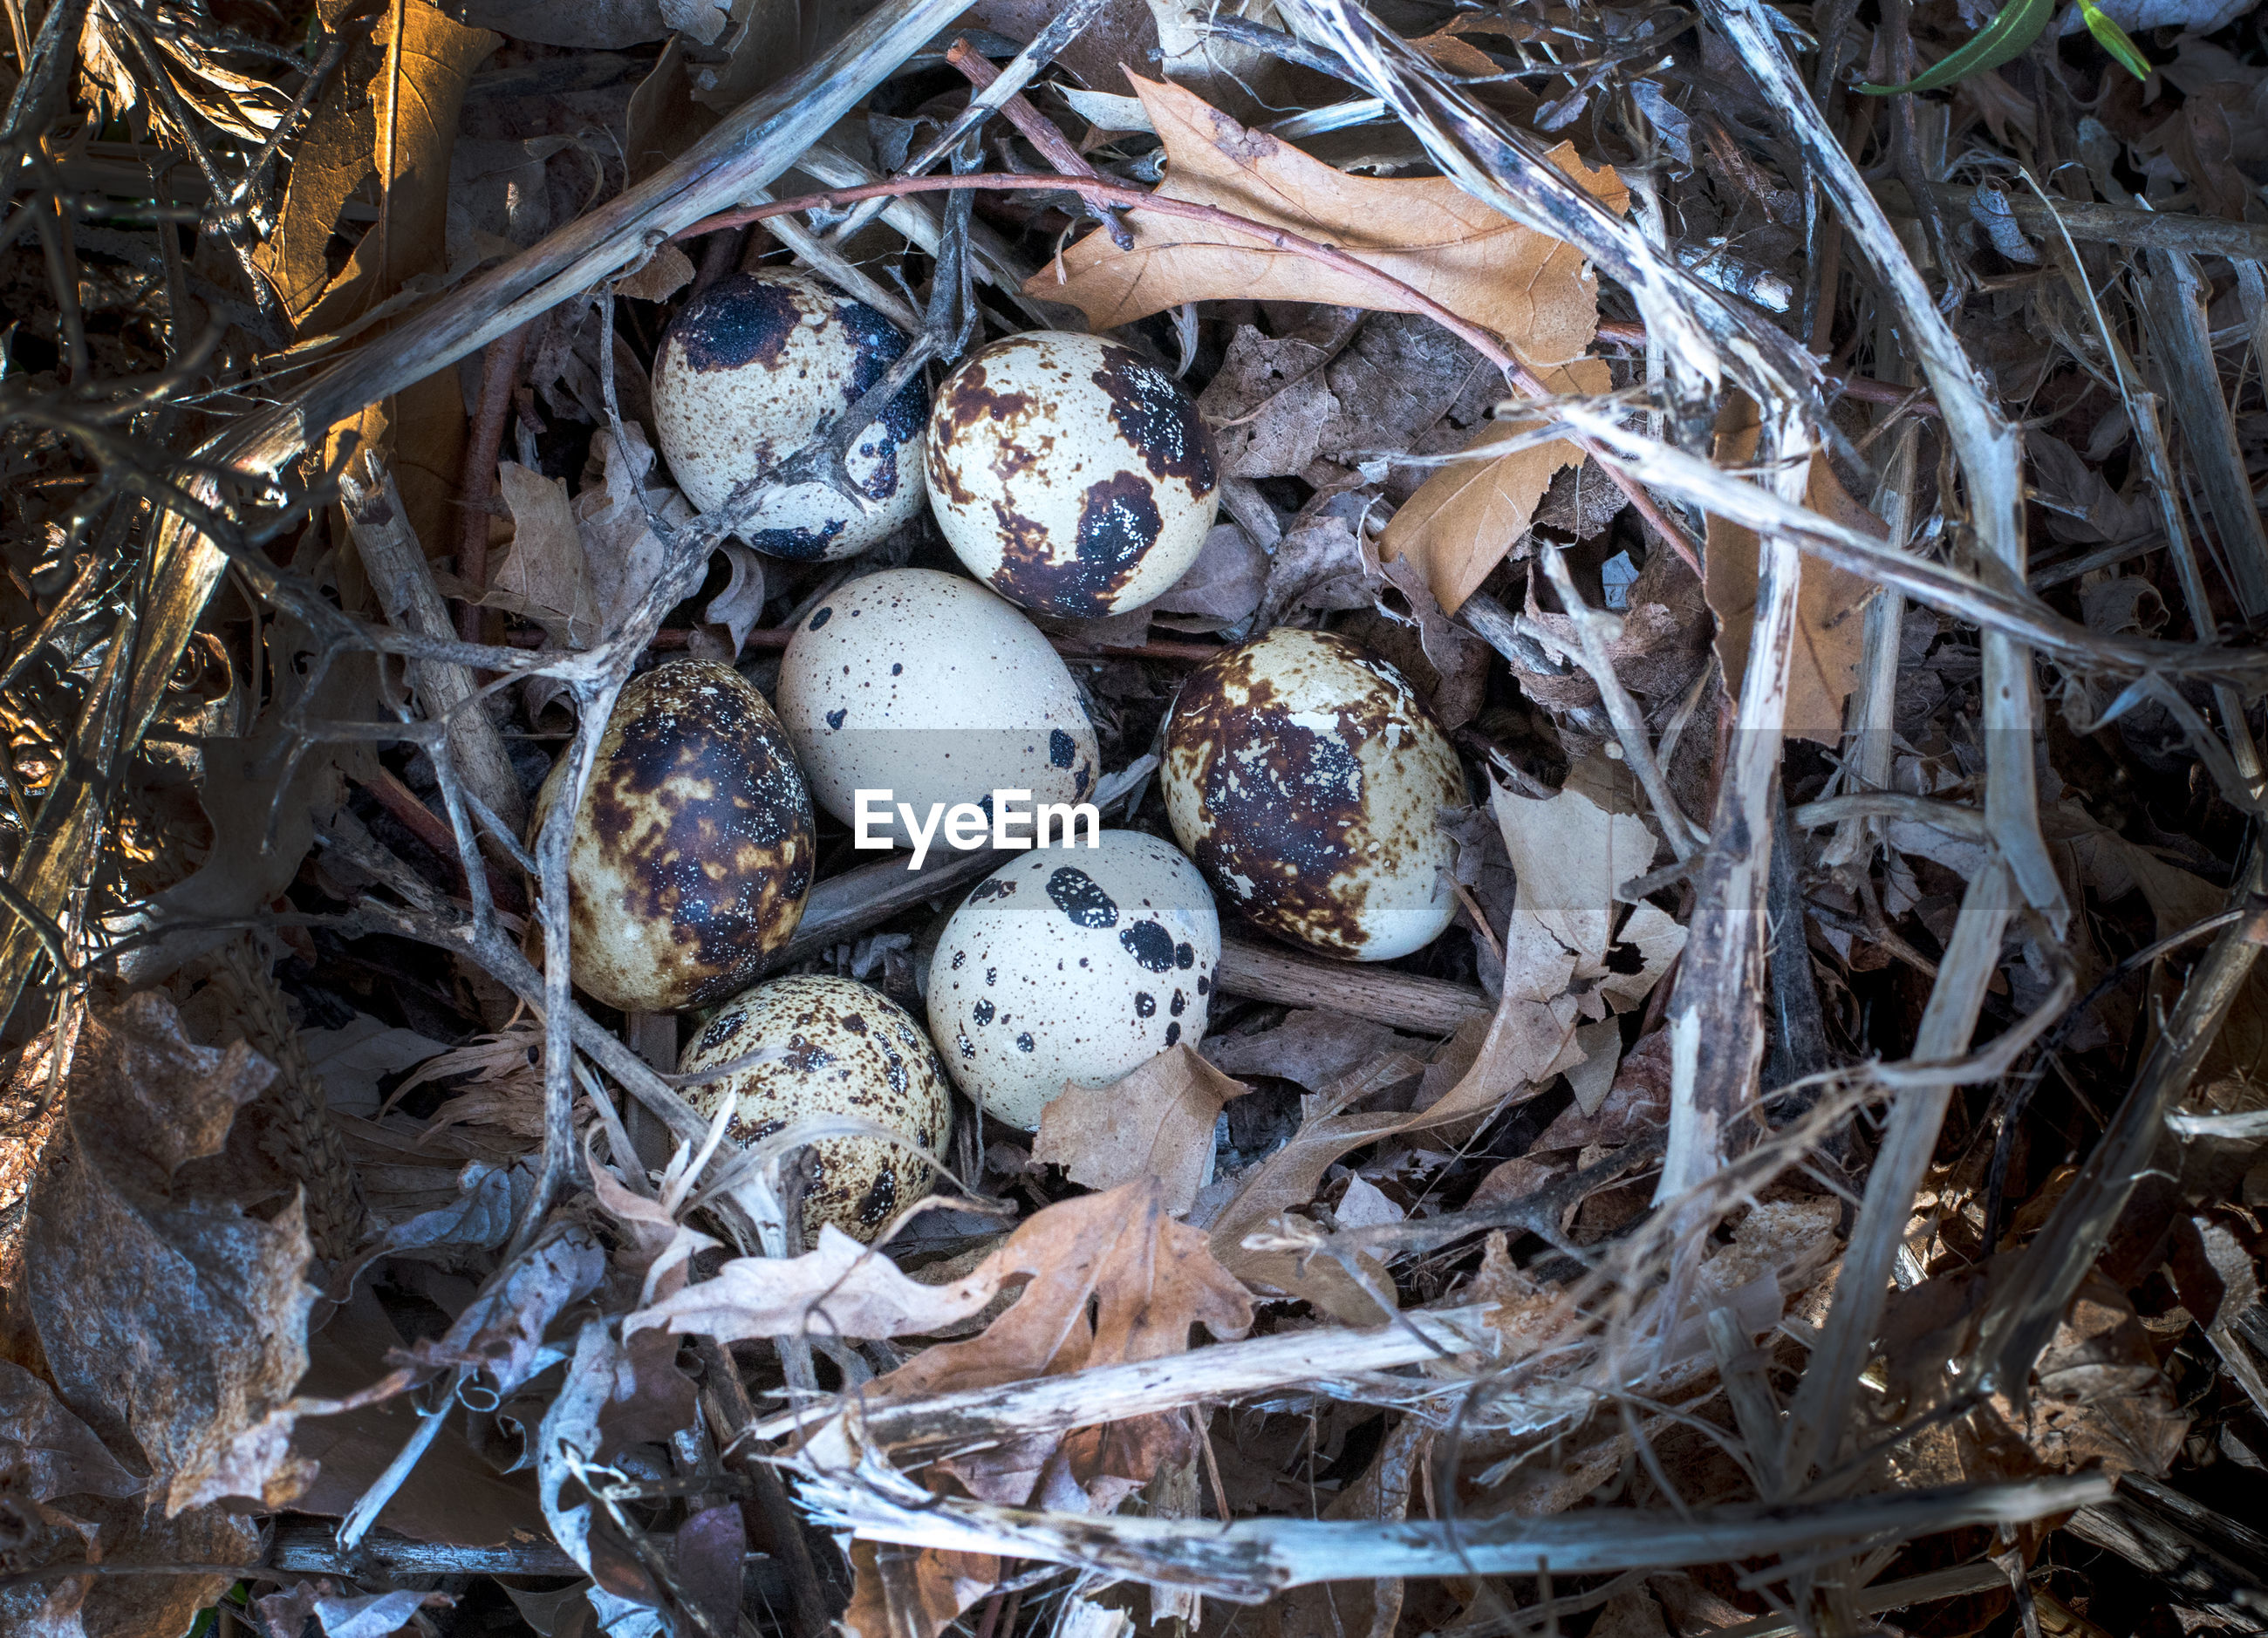 Beautiful speckled quail eggs in a nest on the ground